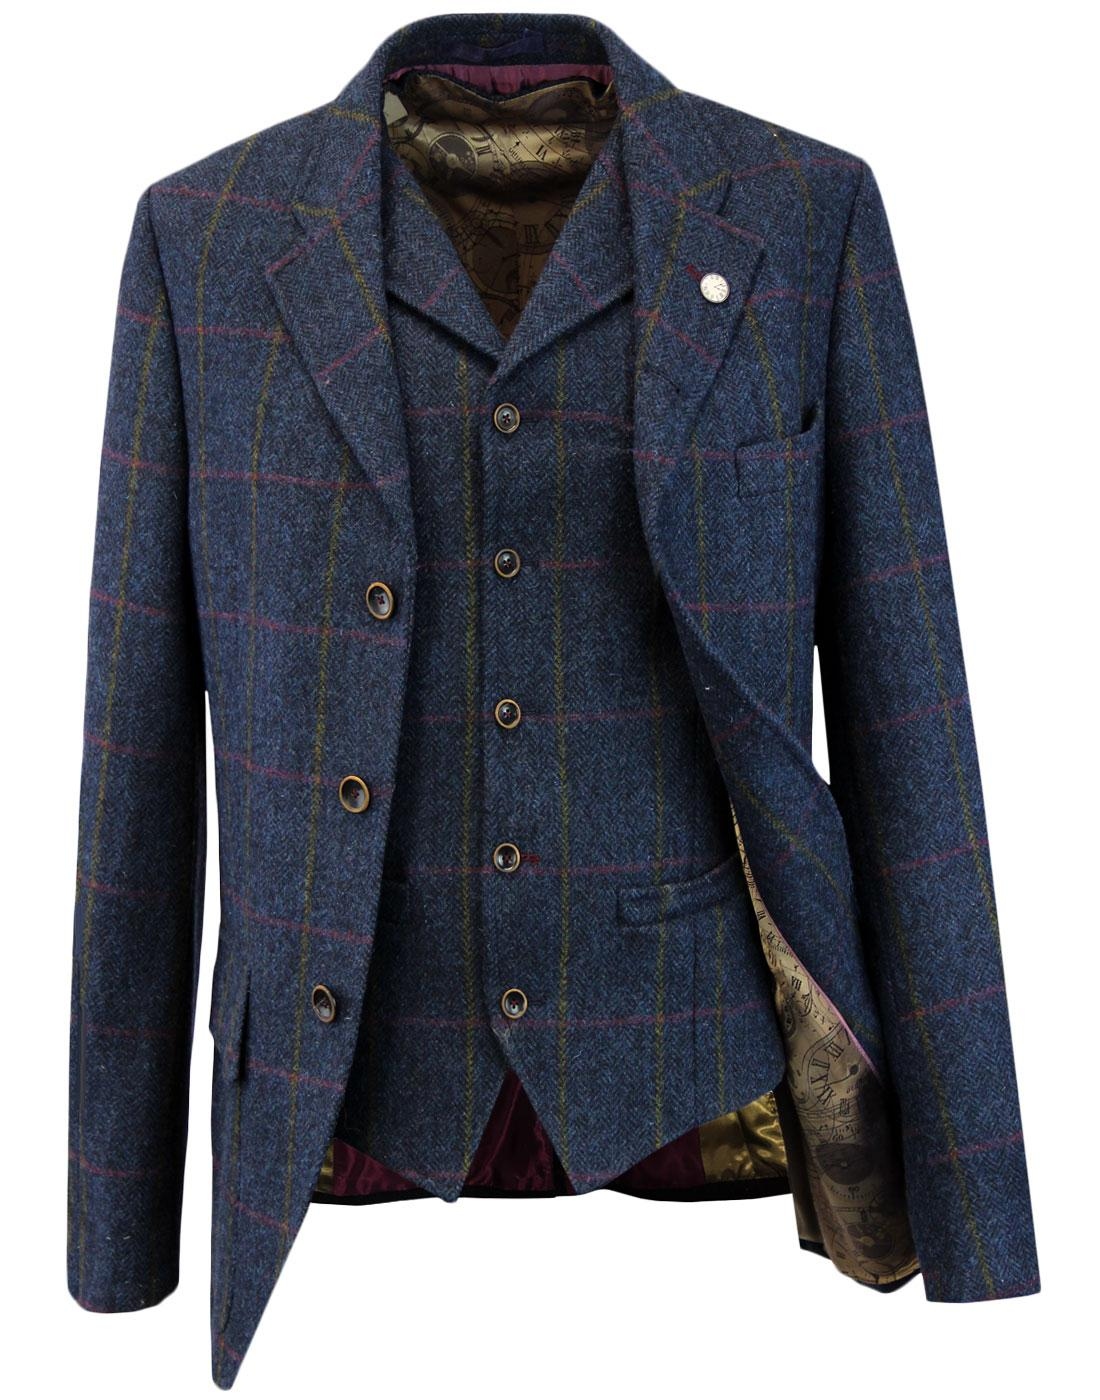 Grouse GIBSON LONDON Matching Blazer & Waistcoat N